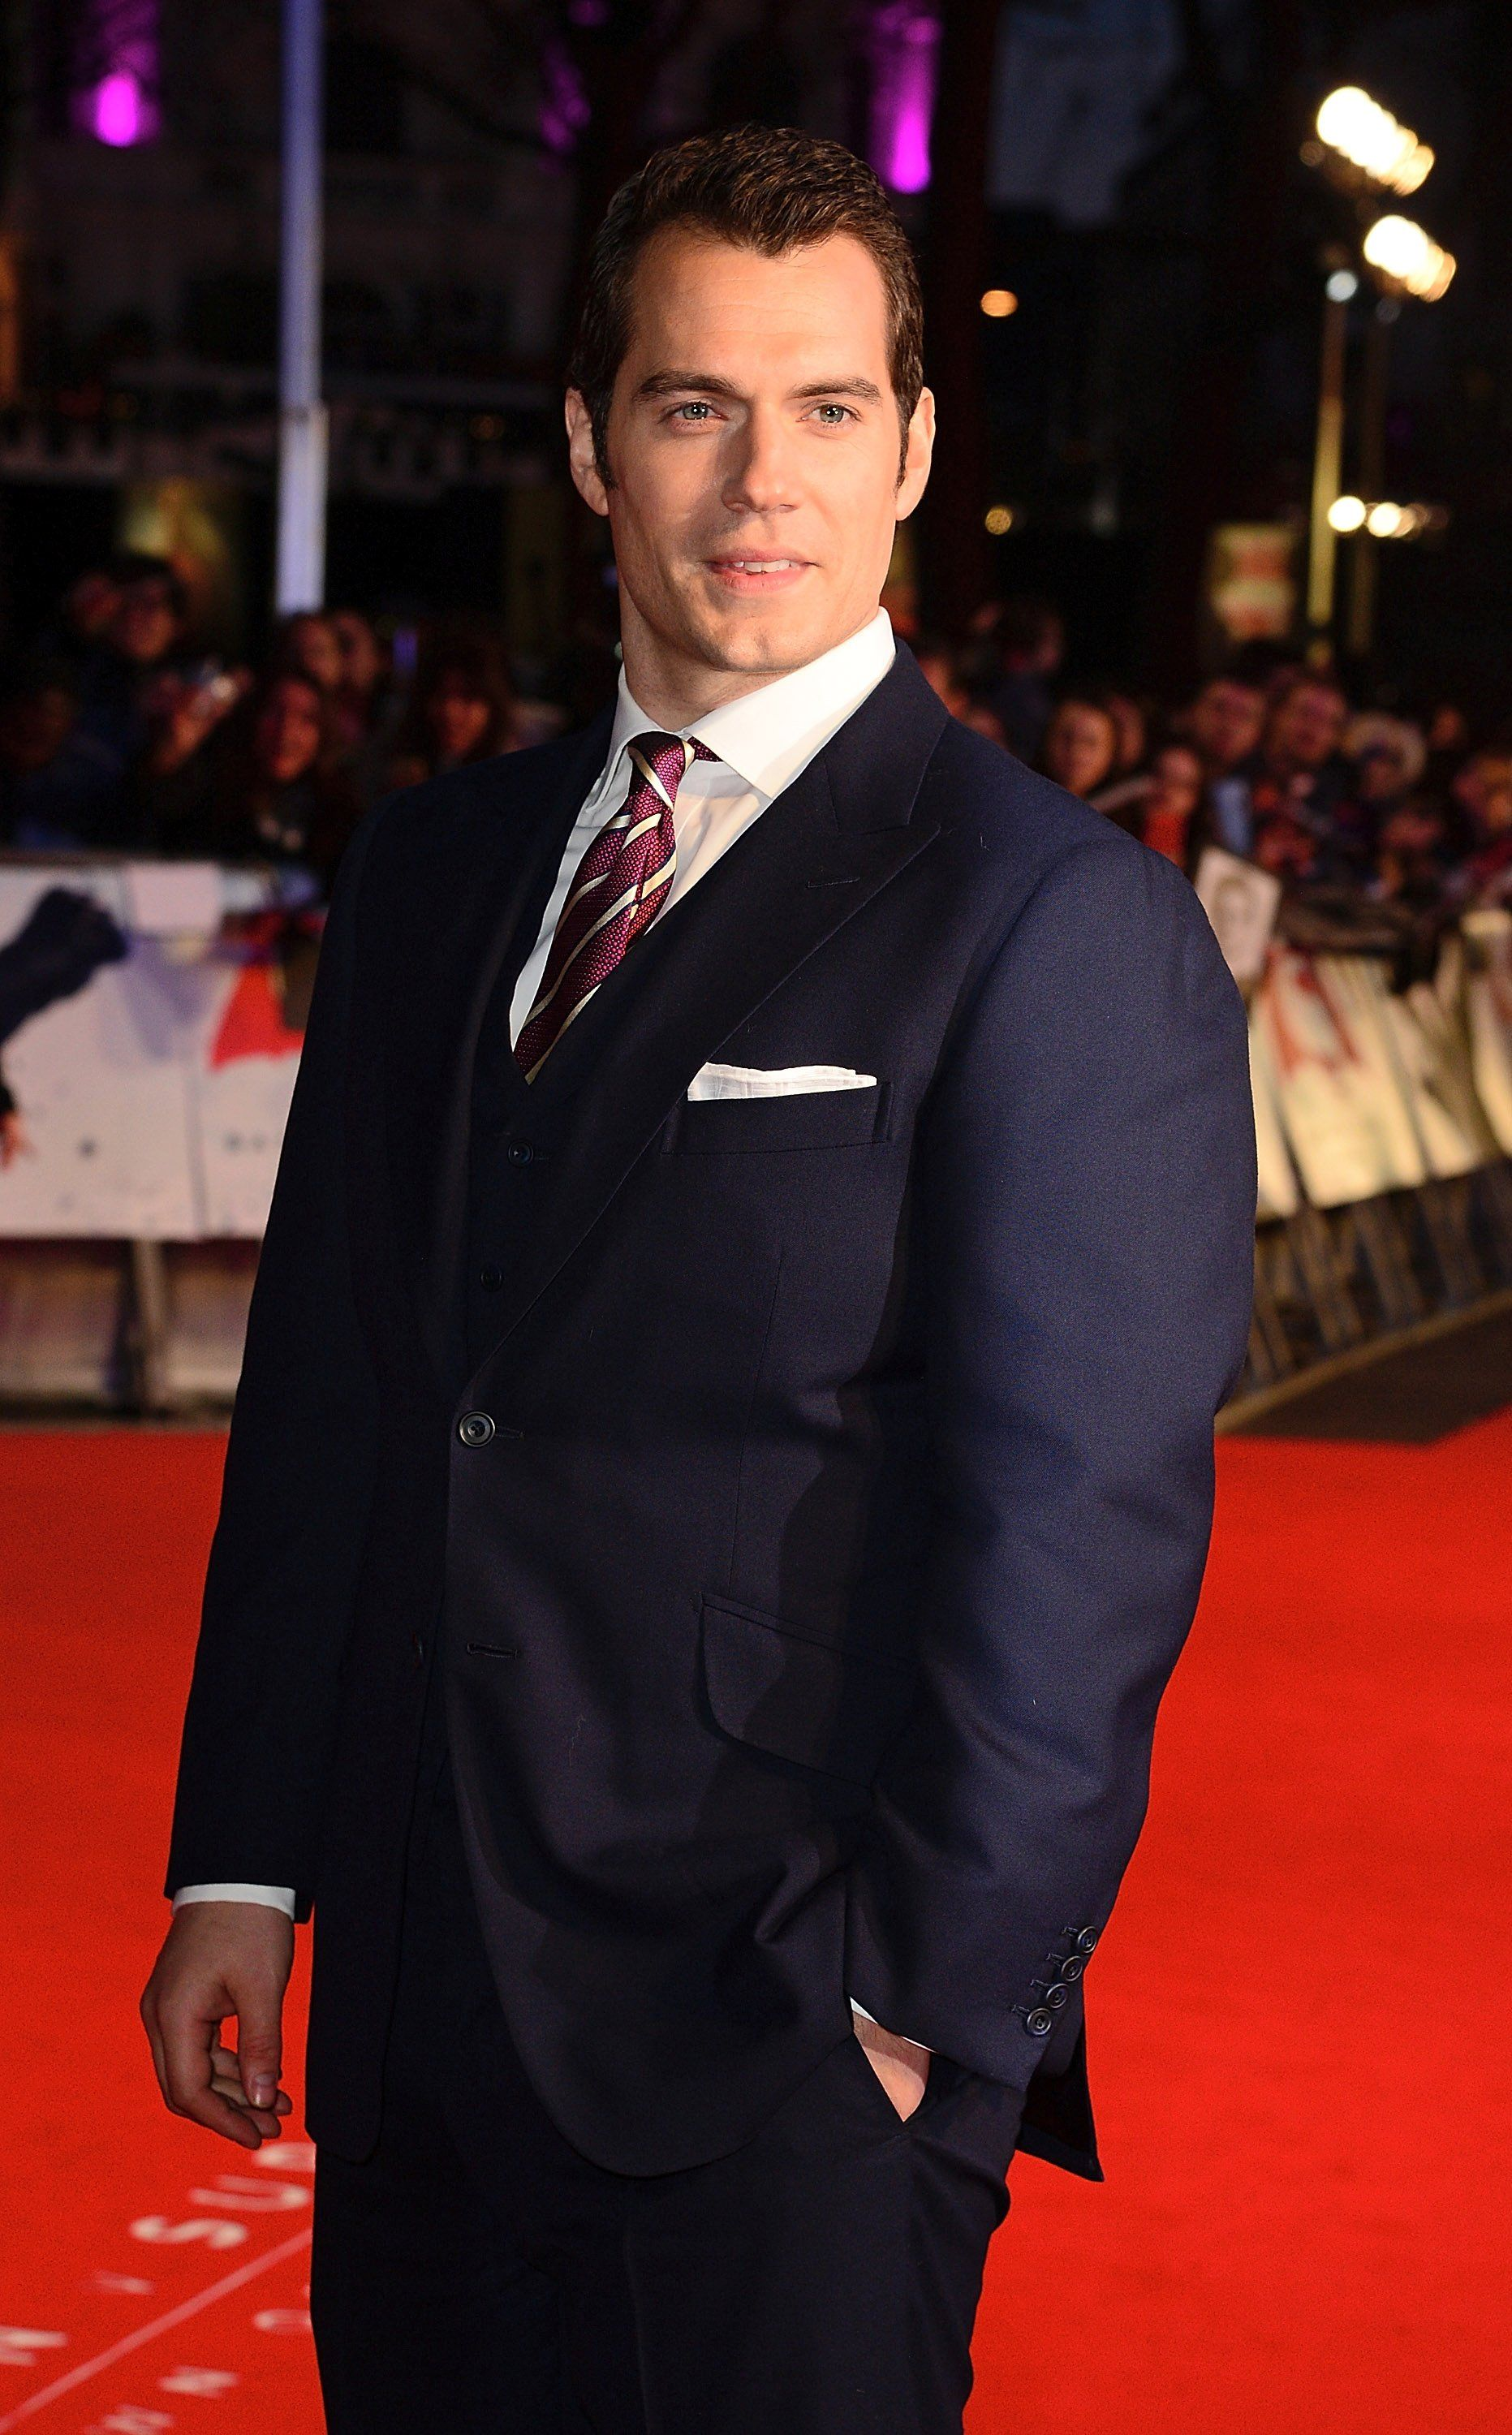 March 22nd | Batman v Superman: Dawn of Justice London Premiere - 030 - MrCavill.com Photo Gallery - Your first source for everything Henry Cavill